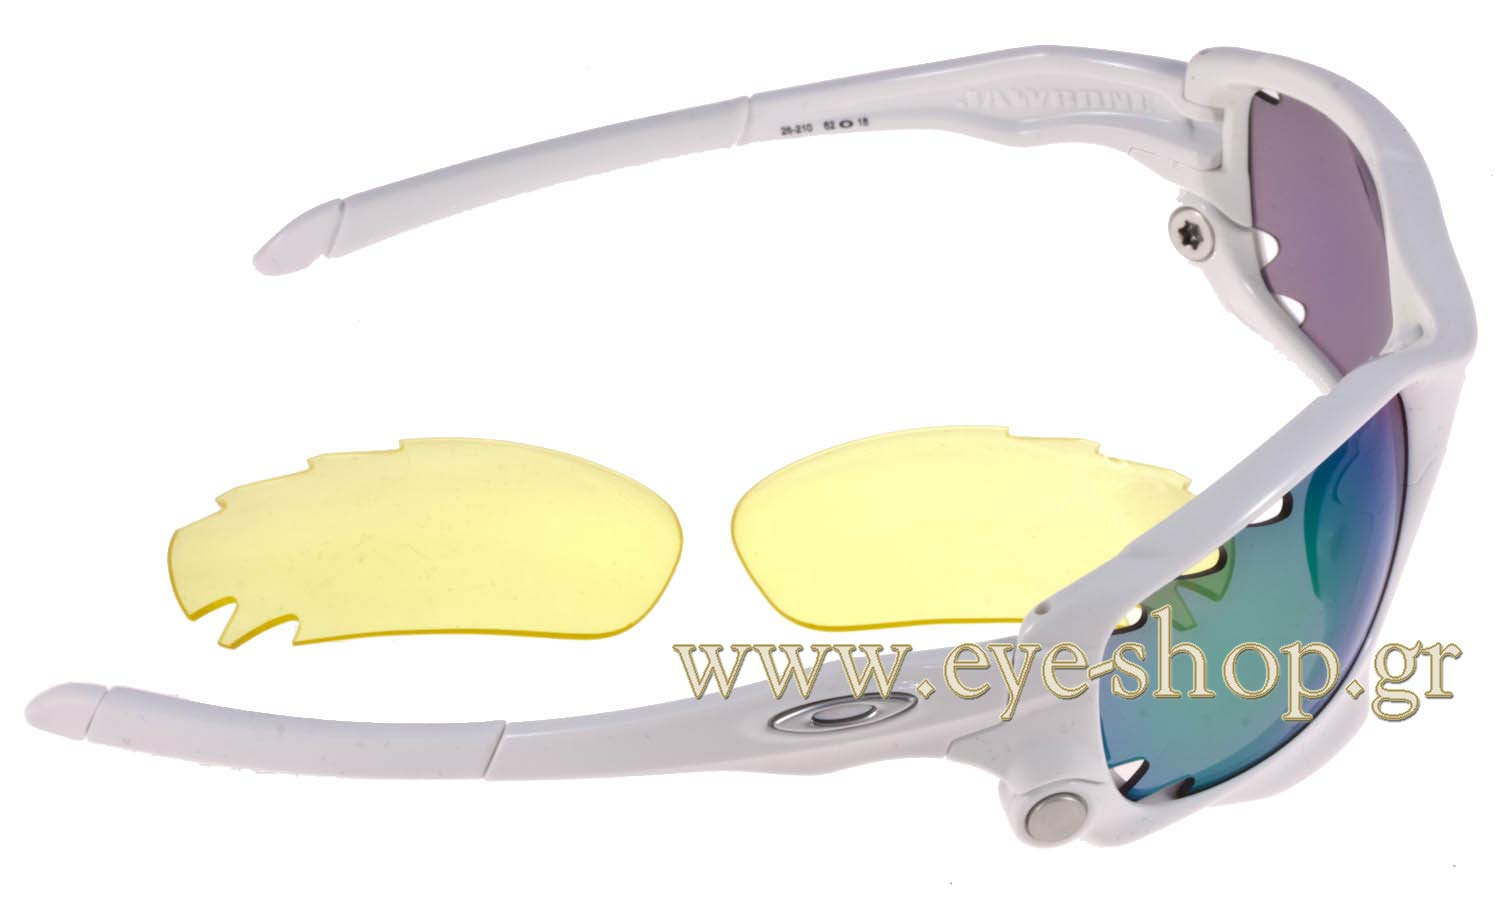 11a1f8dd0ec Oakley model Jawbone 9089 color 26-210